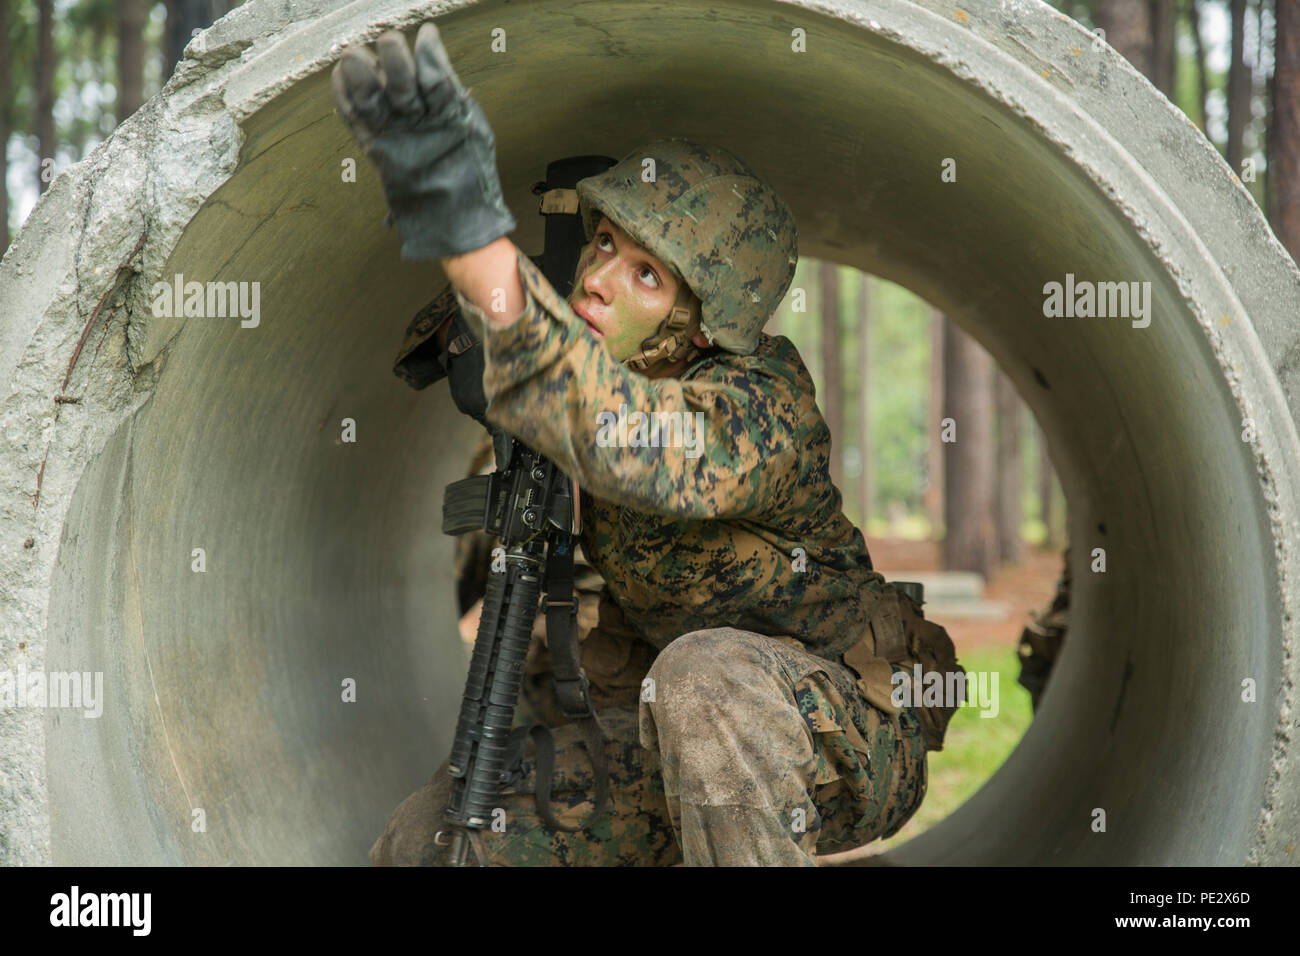 Rct. Marshall T. Darling, Platoon 1084, Charlie Company, 1st Recruit Training Battalion, clears a culvert on a combat training course Sept. 22, 2015, on Parris Island, S.C. The course is part of Basic Warrior Training, which focuses on basic field-related skills all Marines must know. These skills will be broadened during follow-on training at Camp Lejeune, N.C. Darling, 18, from Hamden, Conn., is scheduled to graduate Oct. 16, 2015. Parris Island has been the site of Marine Corps recruit training since Nov. 1, 1915. Today, approximately 20,000 recruits come to Parris Island annually for the c - Stock Image